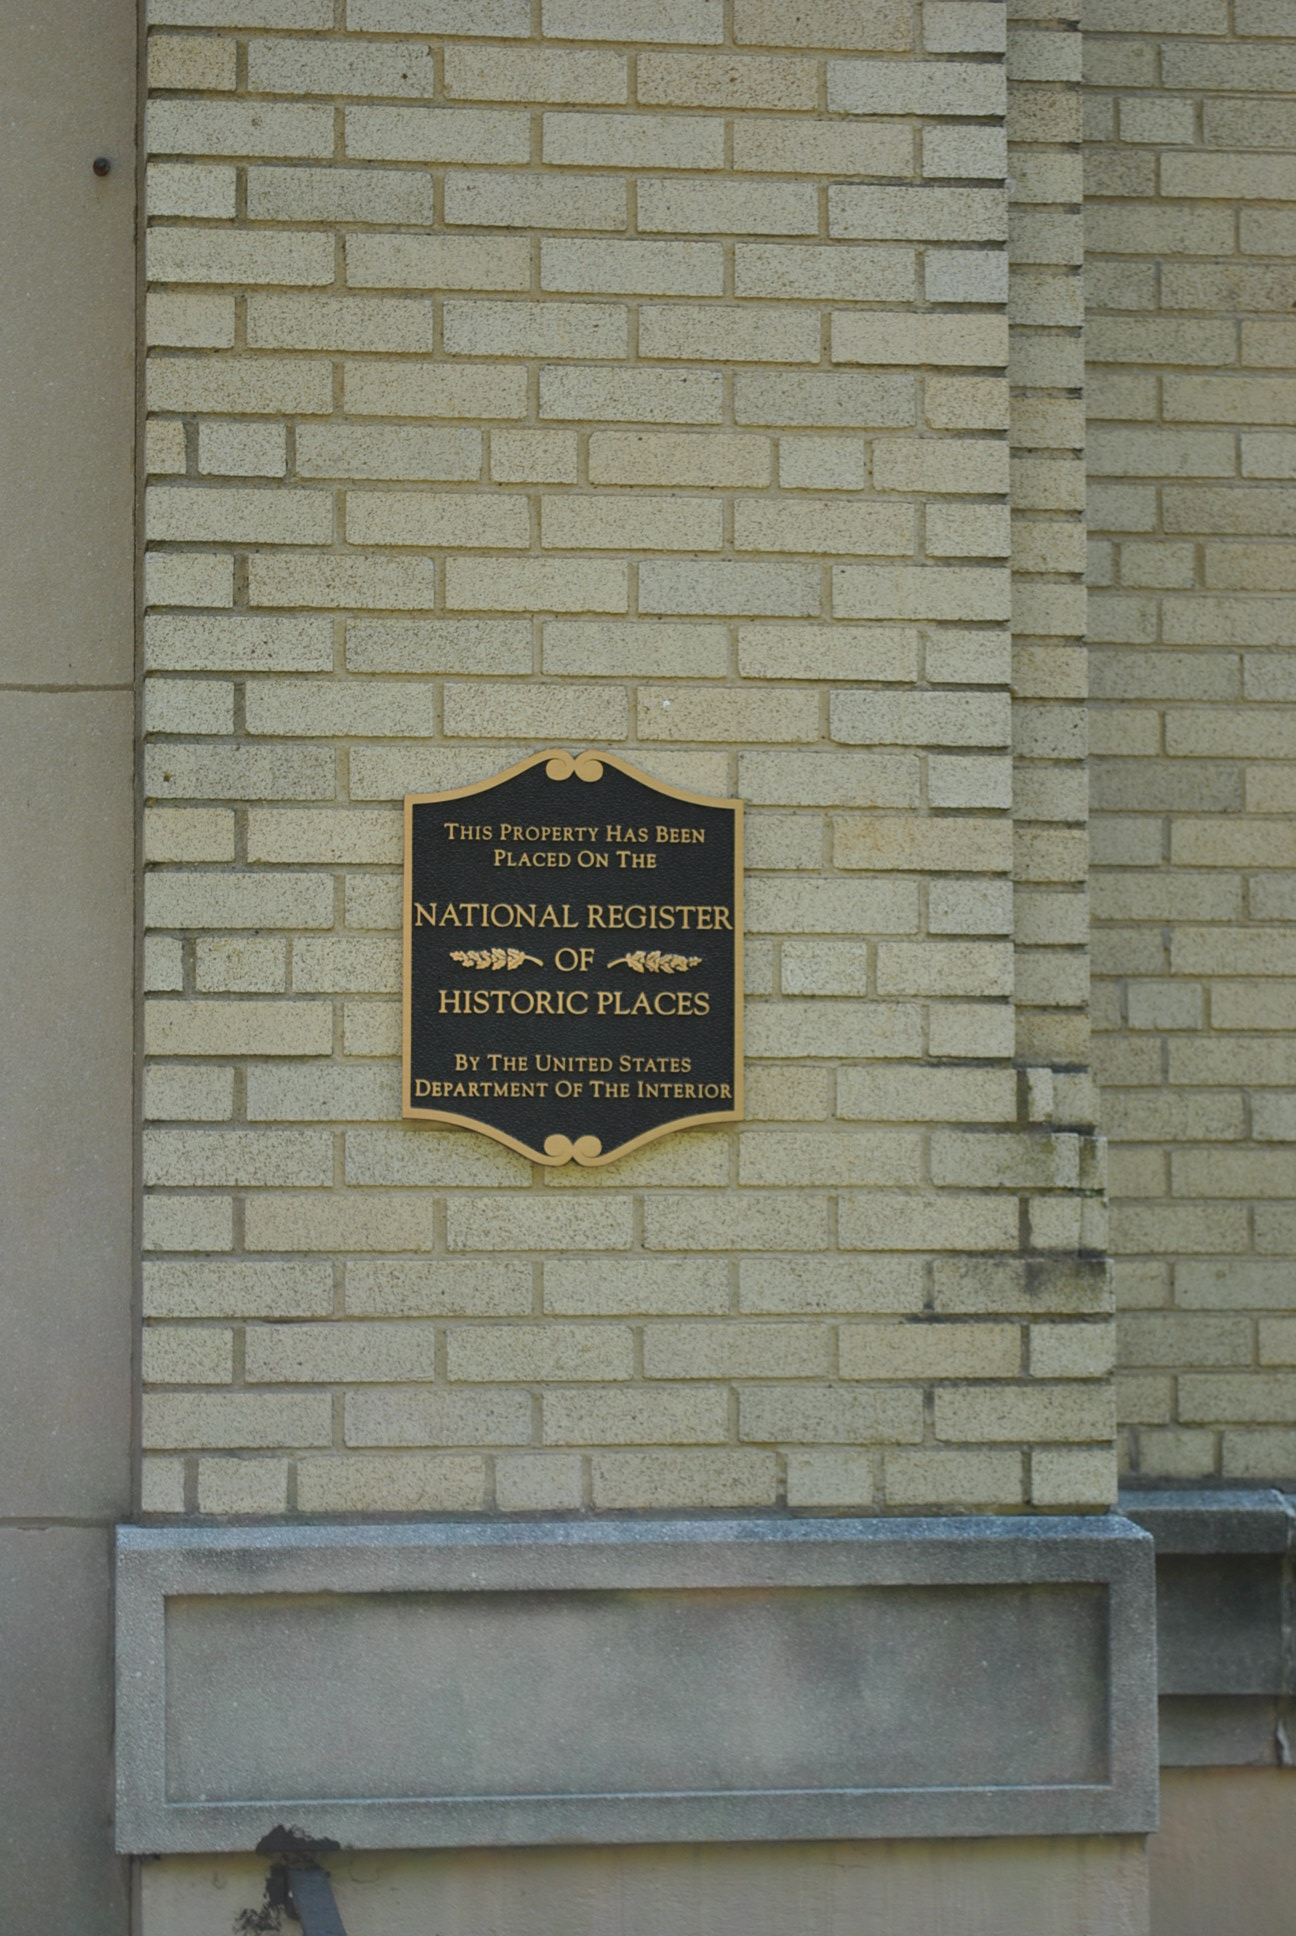 NRHP plaque on the school.